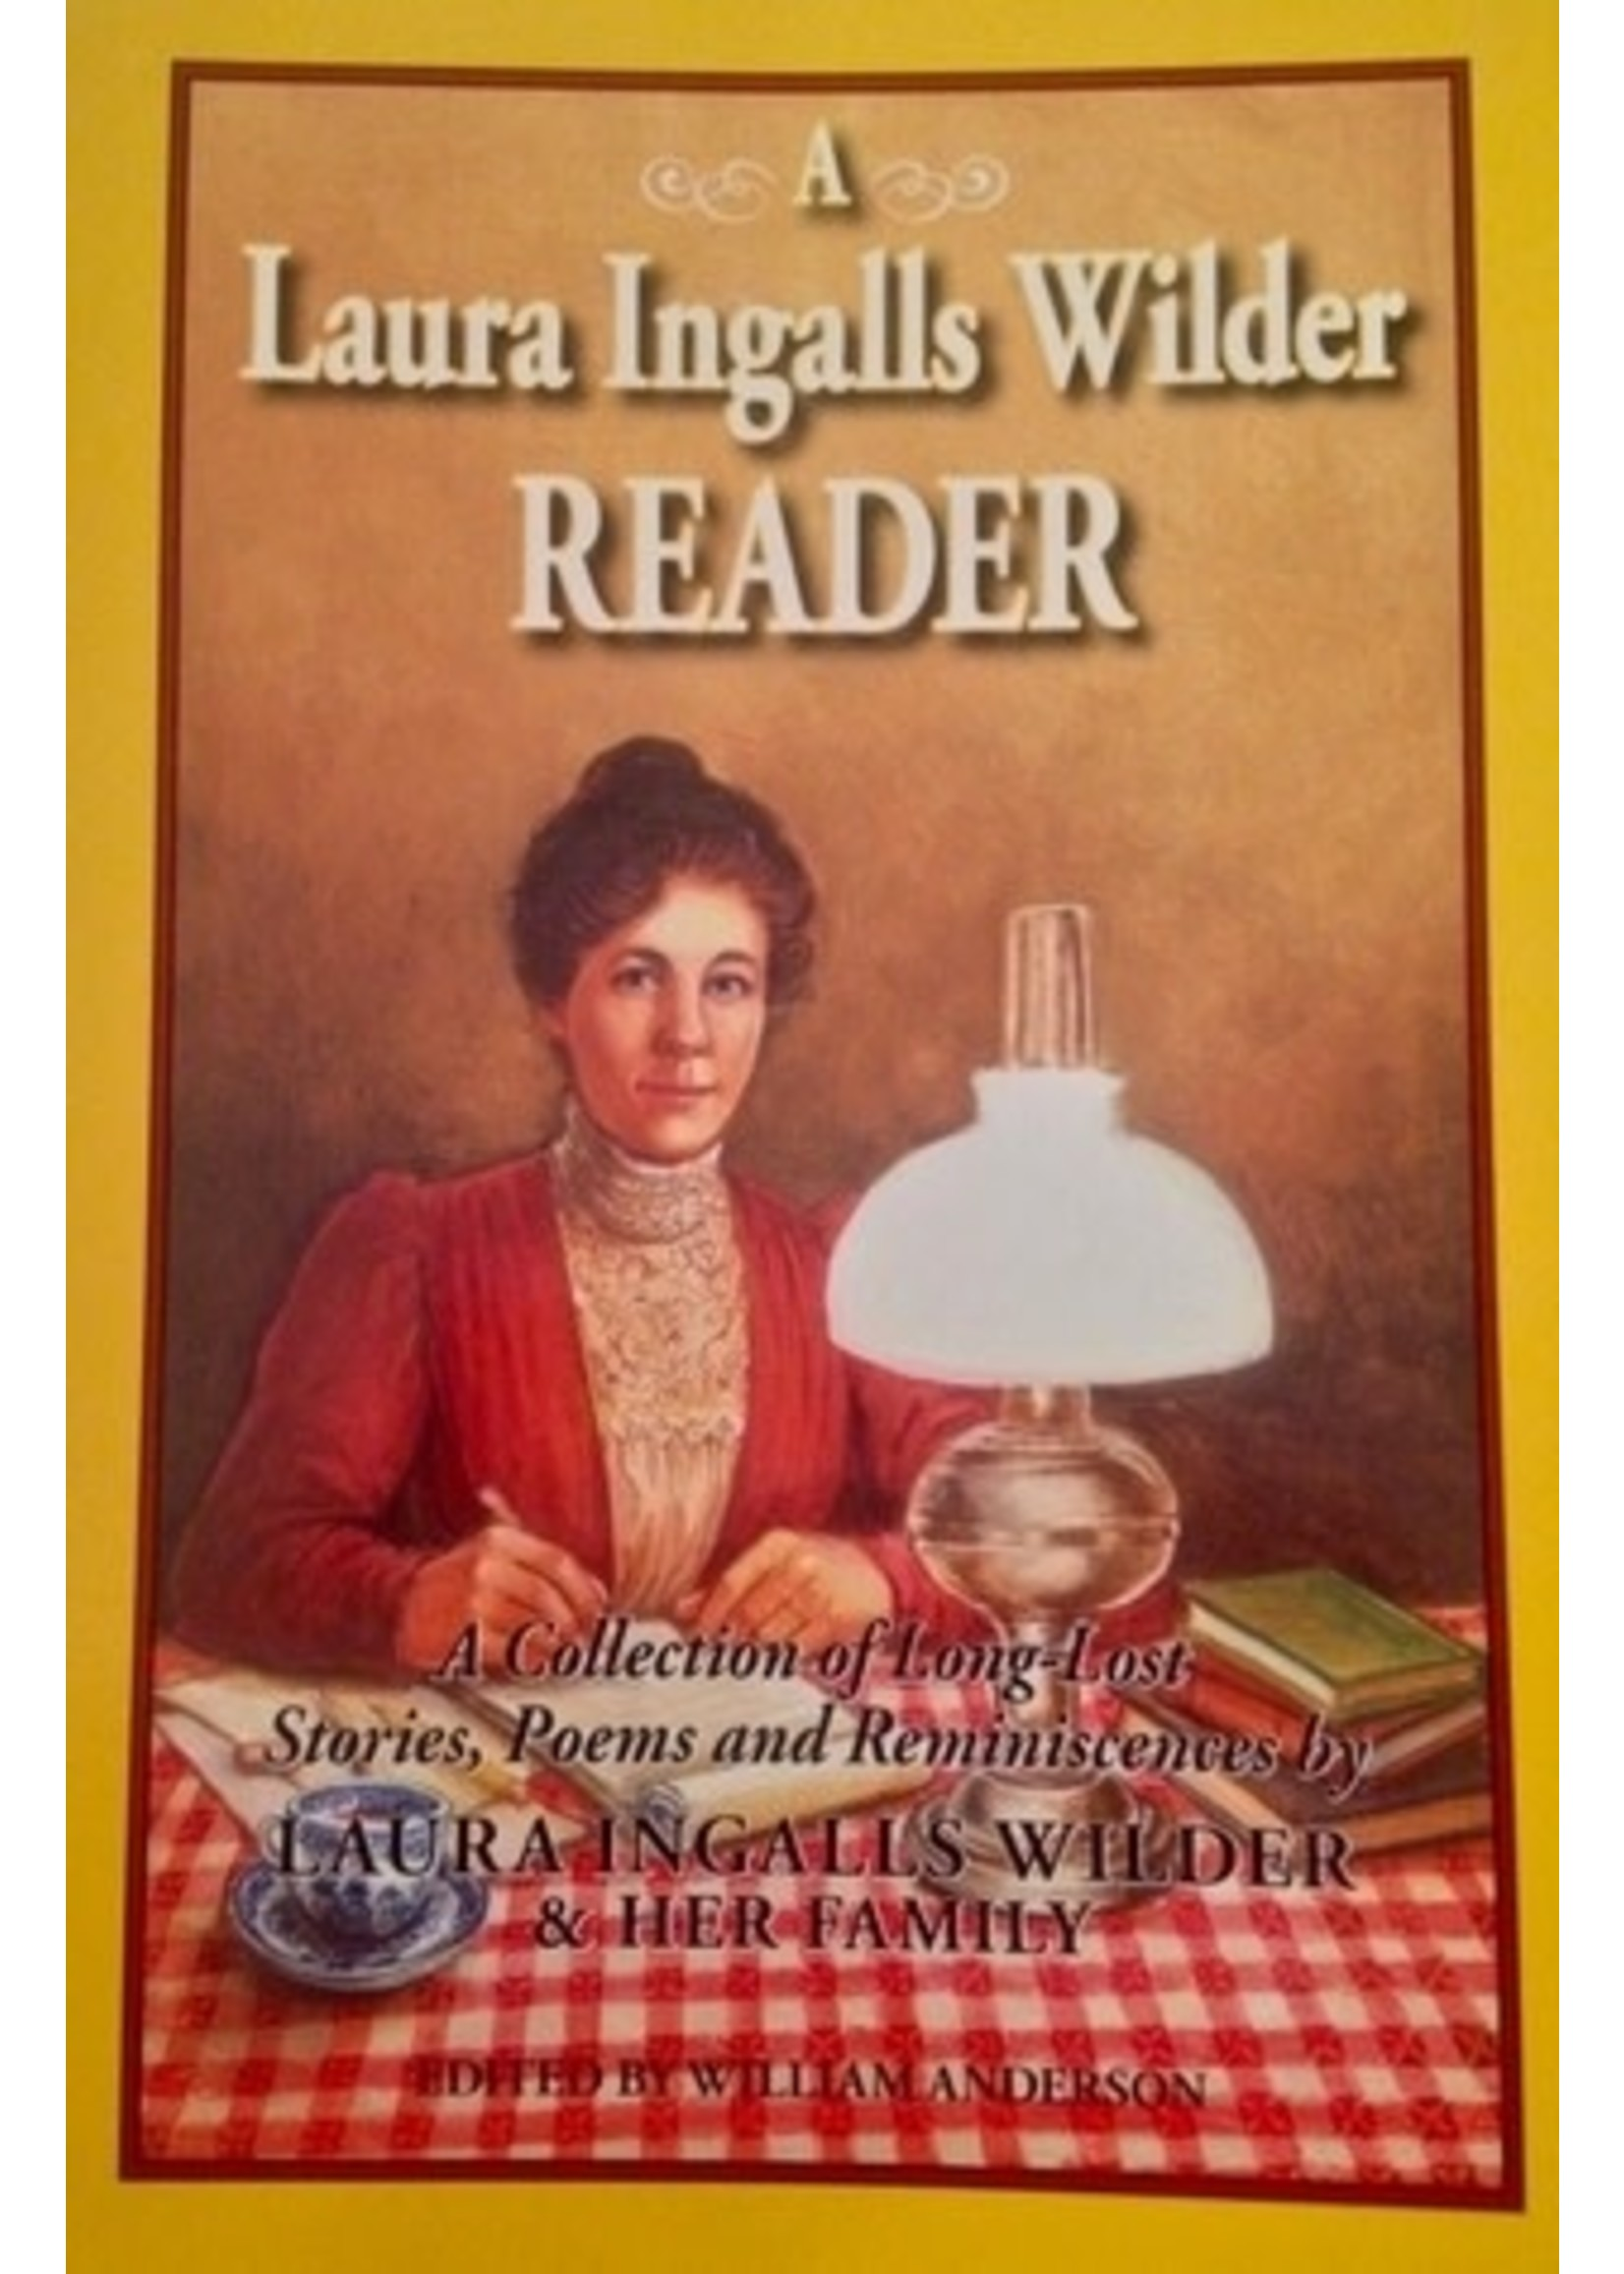 A Laura Ingalls Wilder Reader:  A Collection of Long Lost Stories, Poems, and Reminiscences